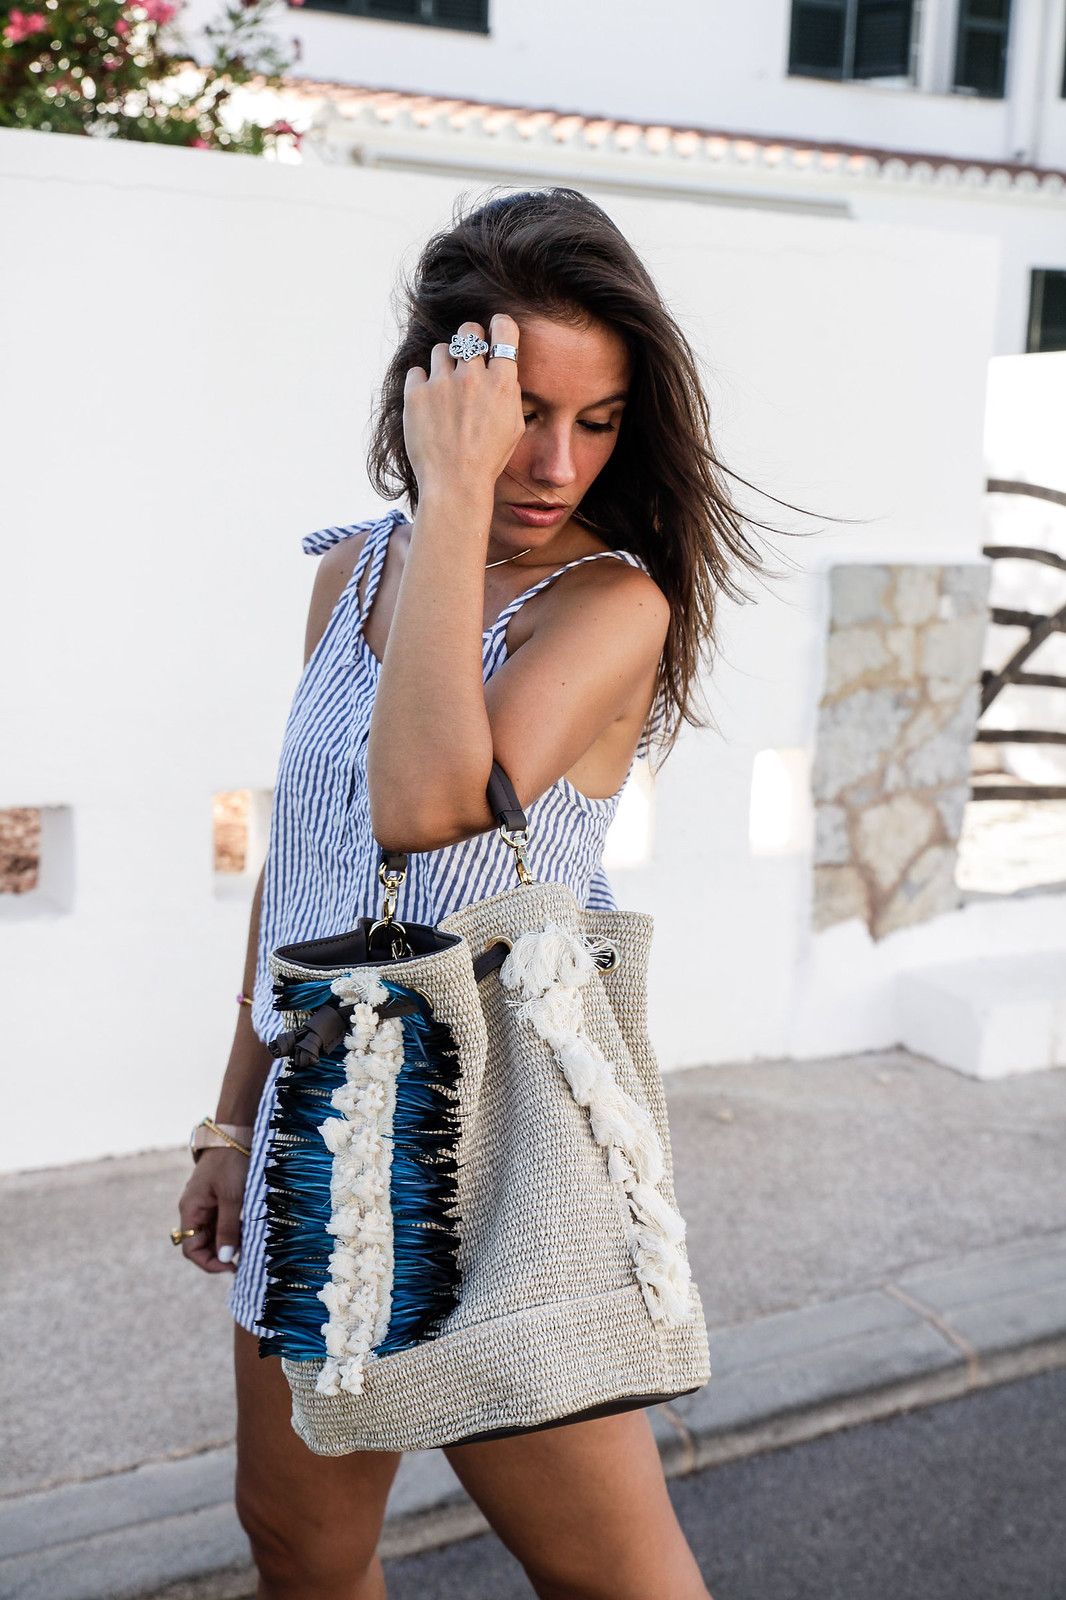 02_Mono_rayas_marineras_casual_outfit_theguestgirl_bolso_boho_via_email_pieces_style_the_guest_girl_influencer_menorca_minorca_barcelona_spain_fashion_blogger